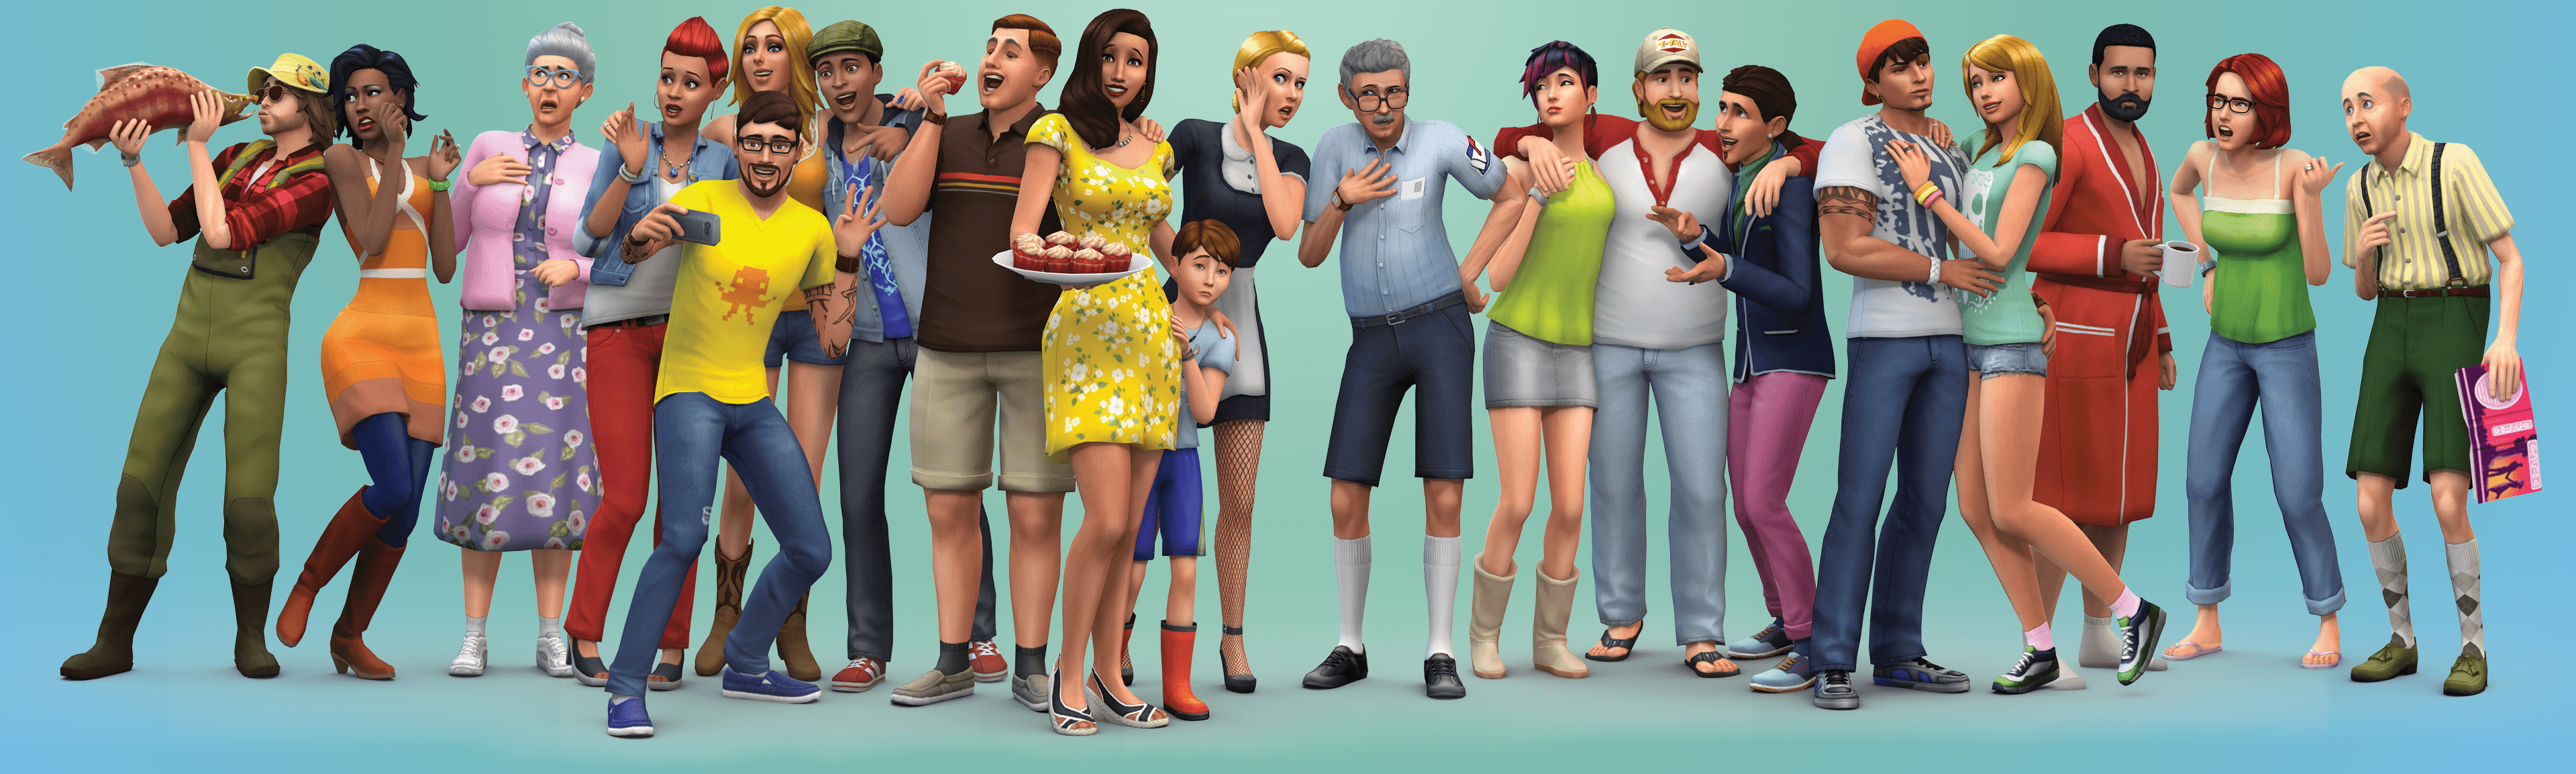 SimFans: New Sims 4 Render + Downloadable Wallpapers! | SimsVIP